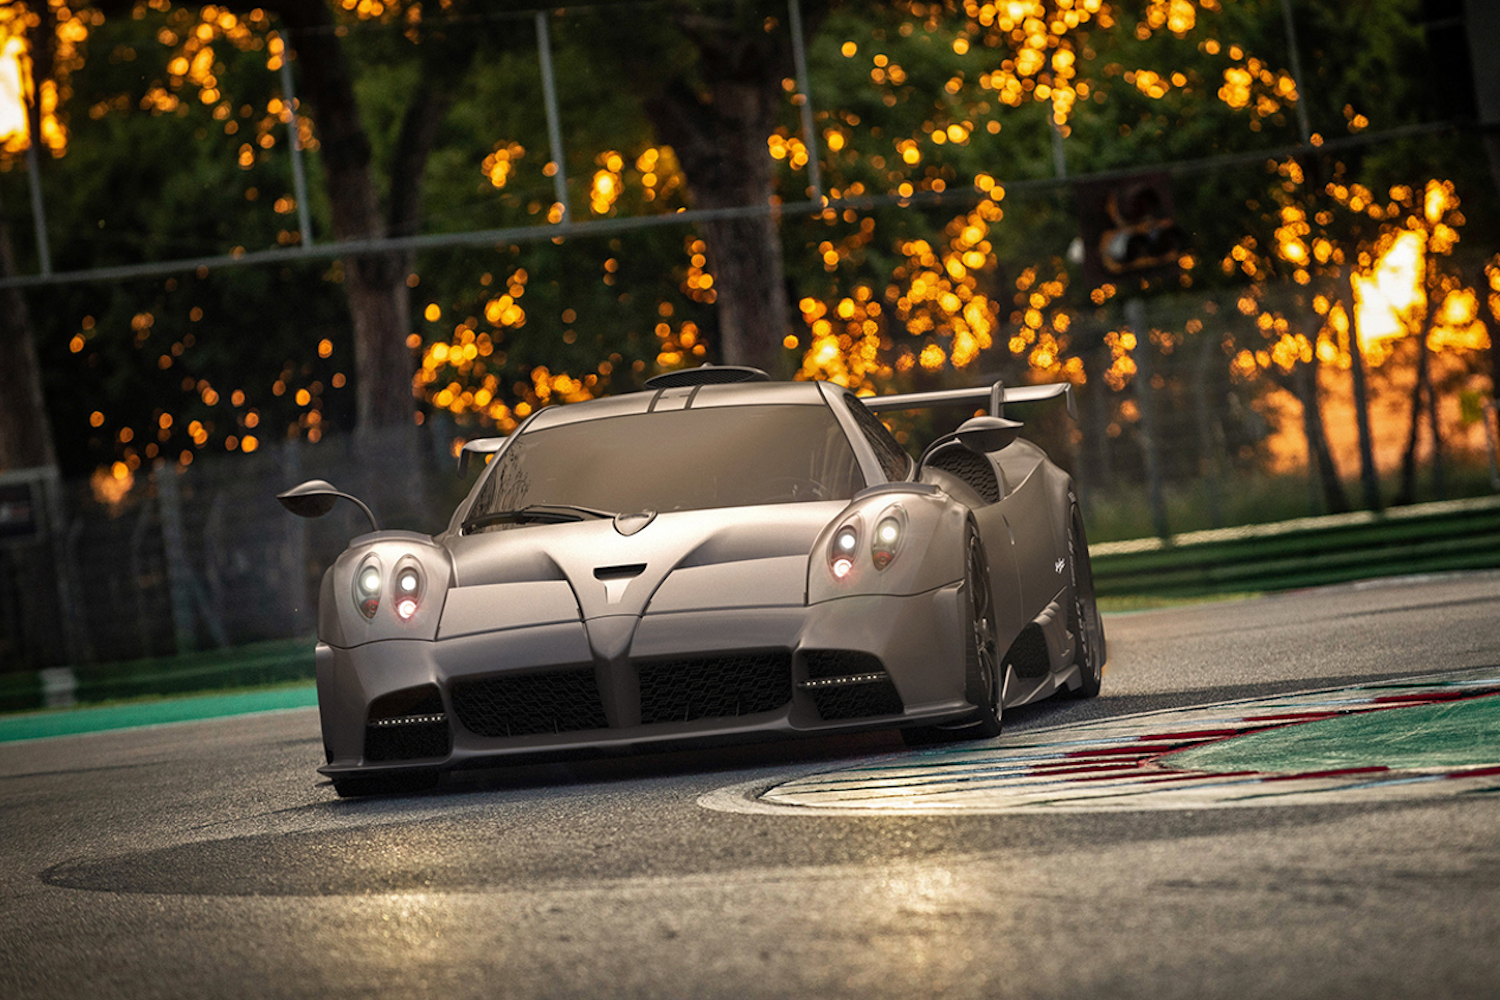 Hardcore Pagani Imola developed on track for the road